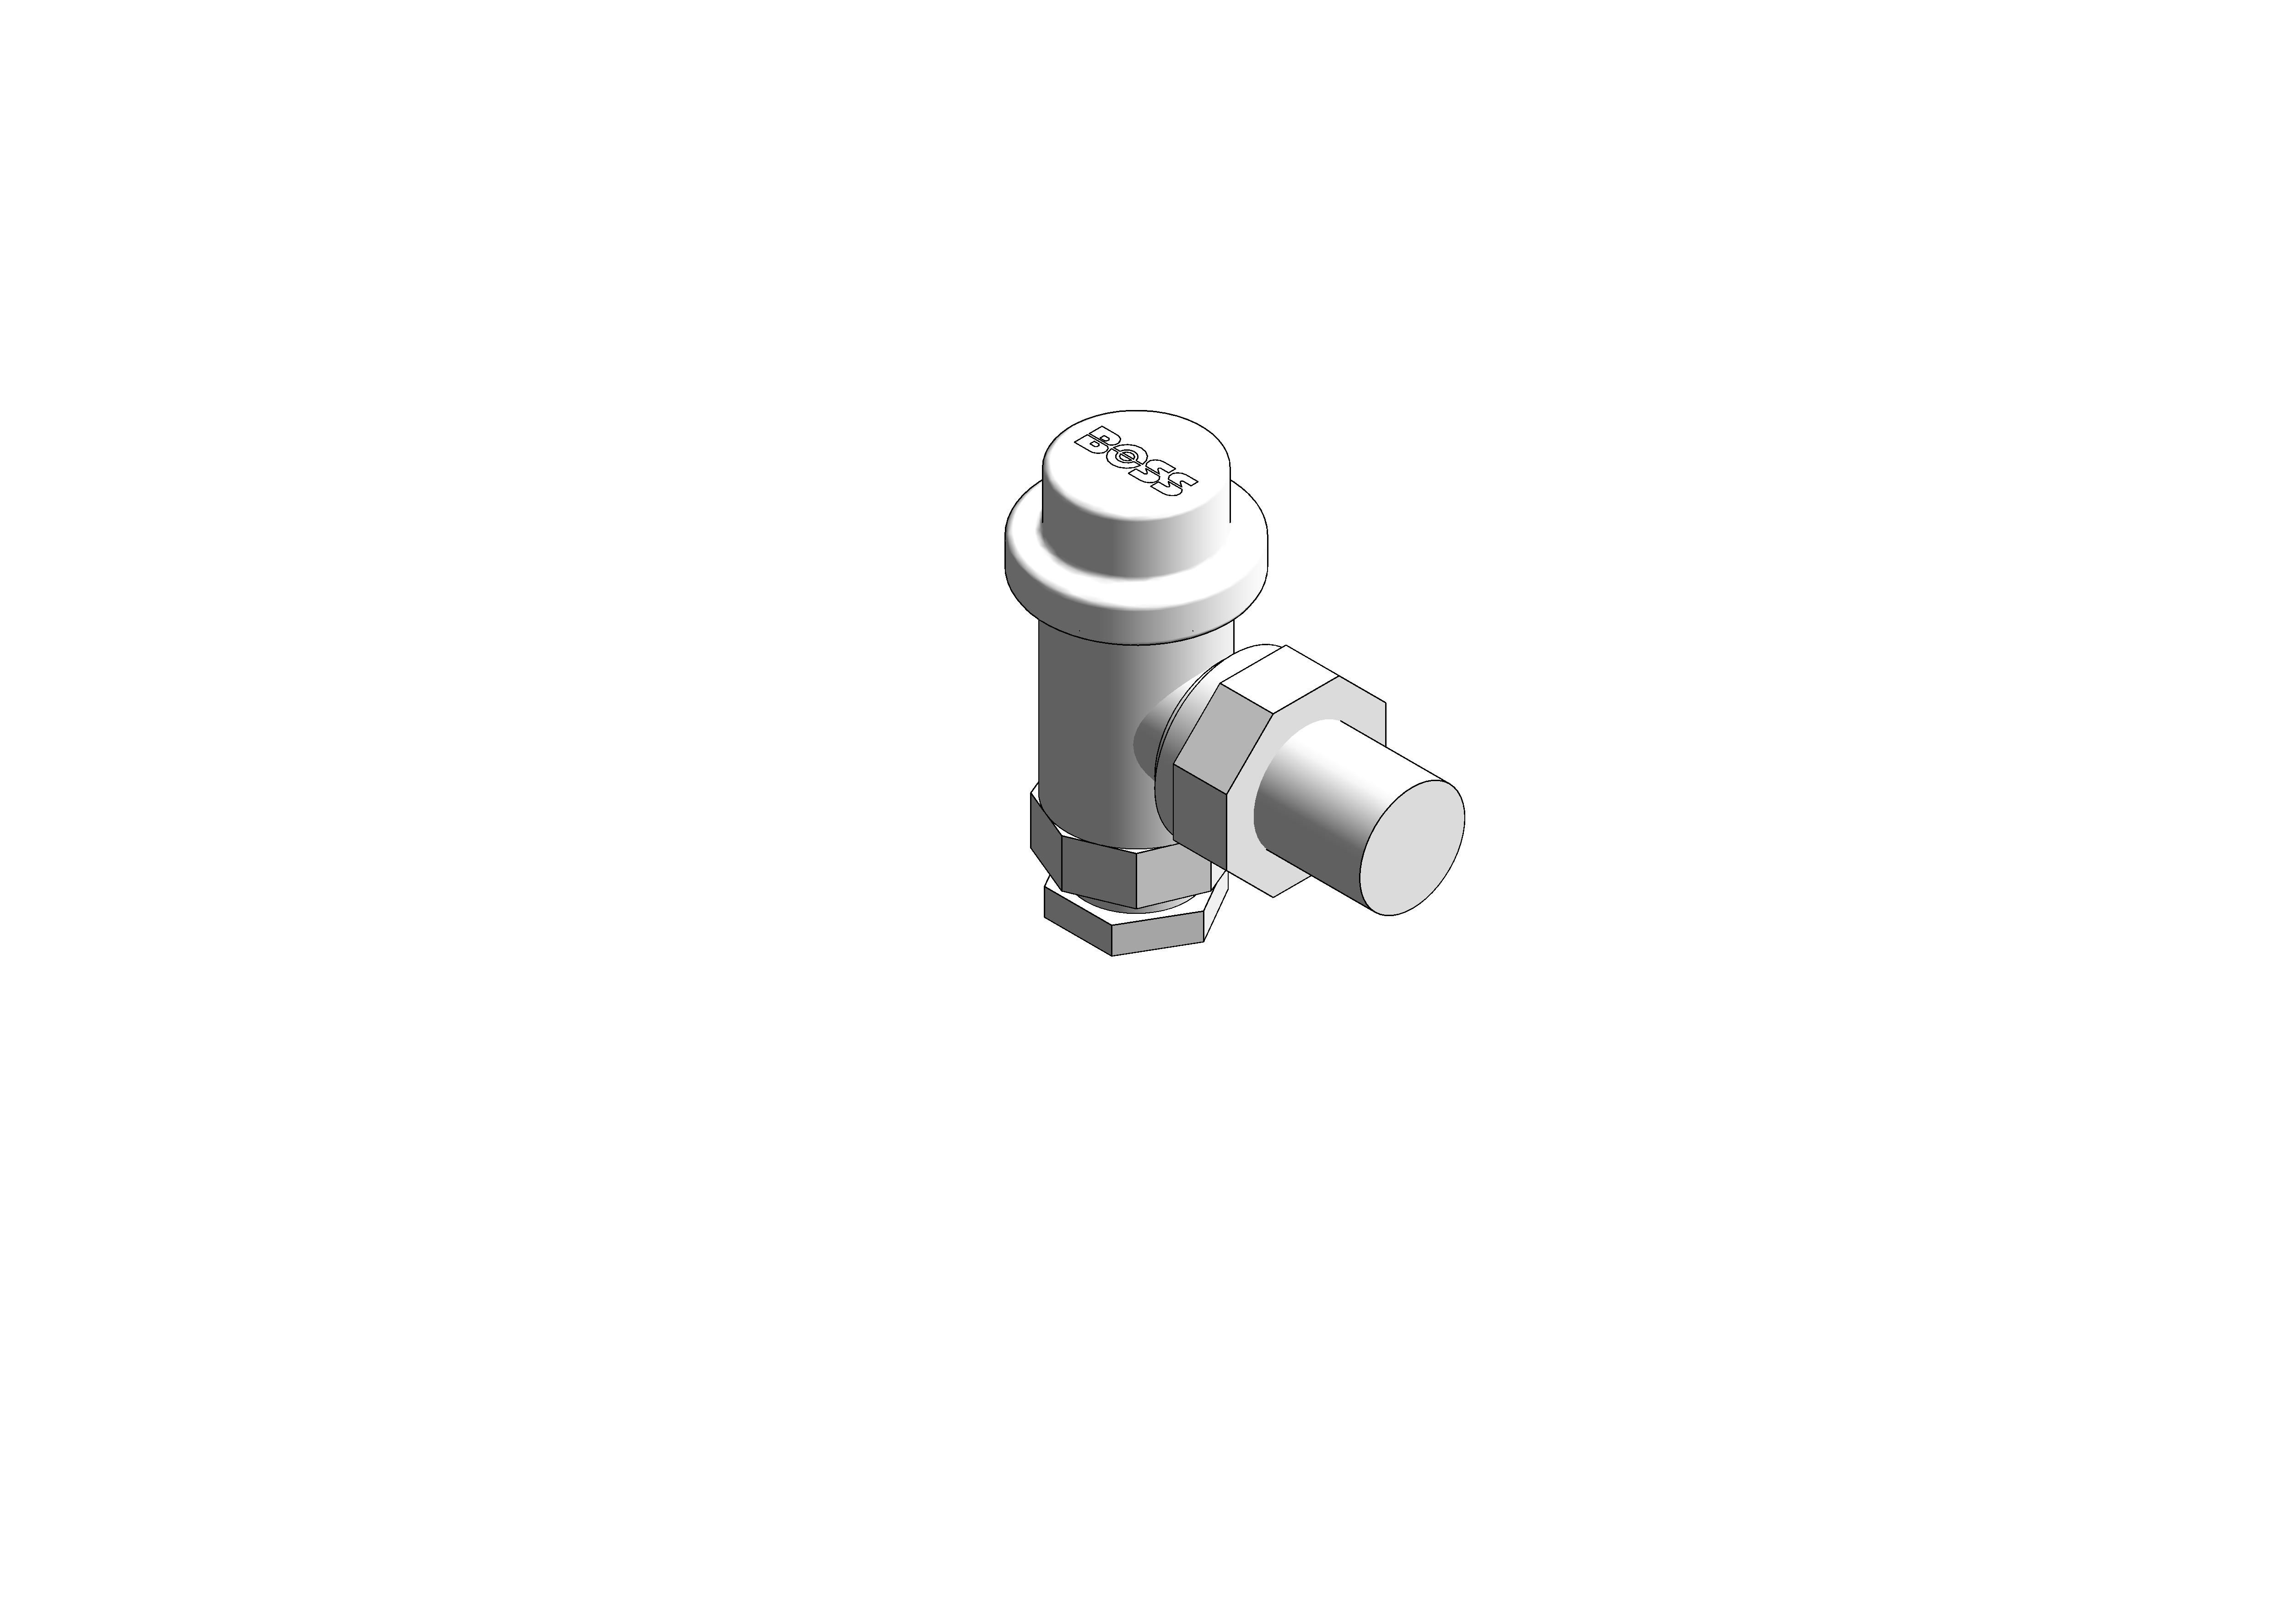 Product: Angle Concealed CPLS MRV